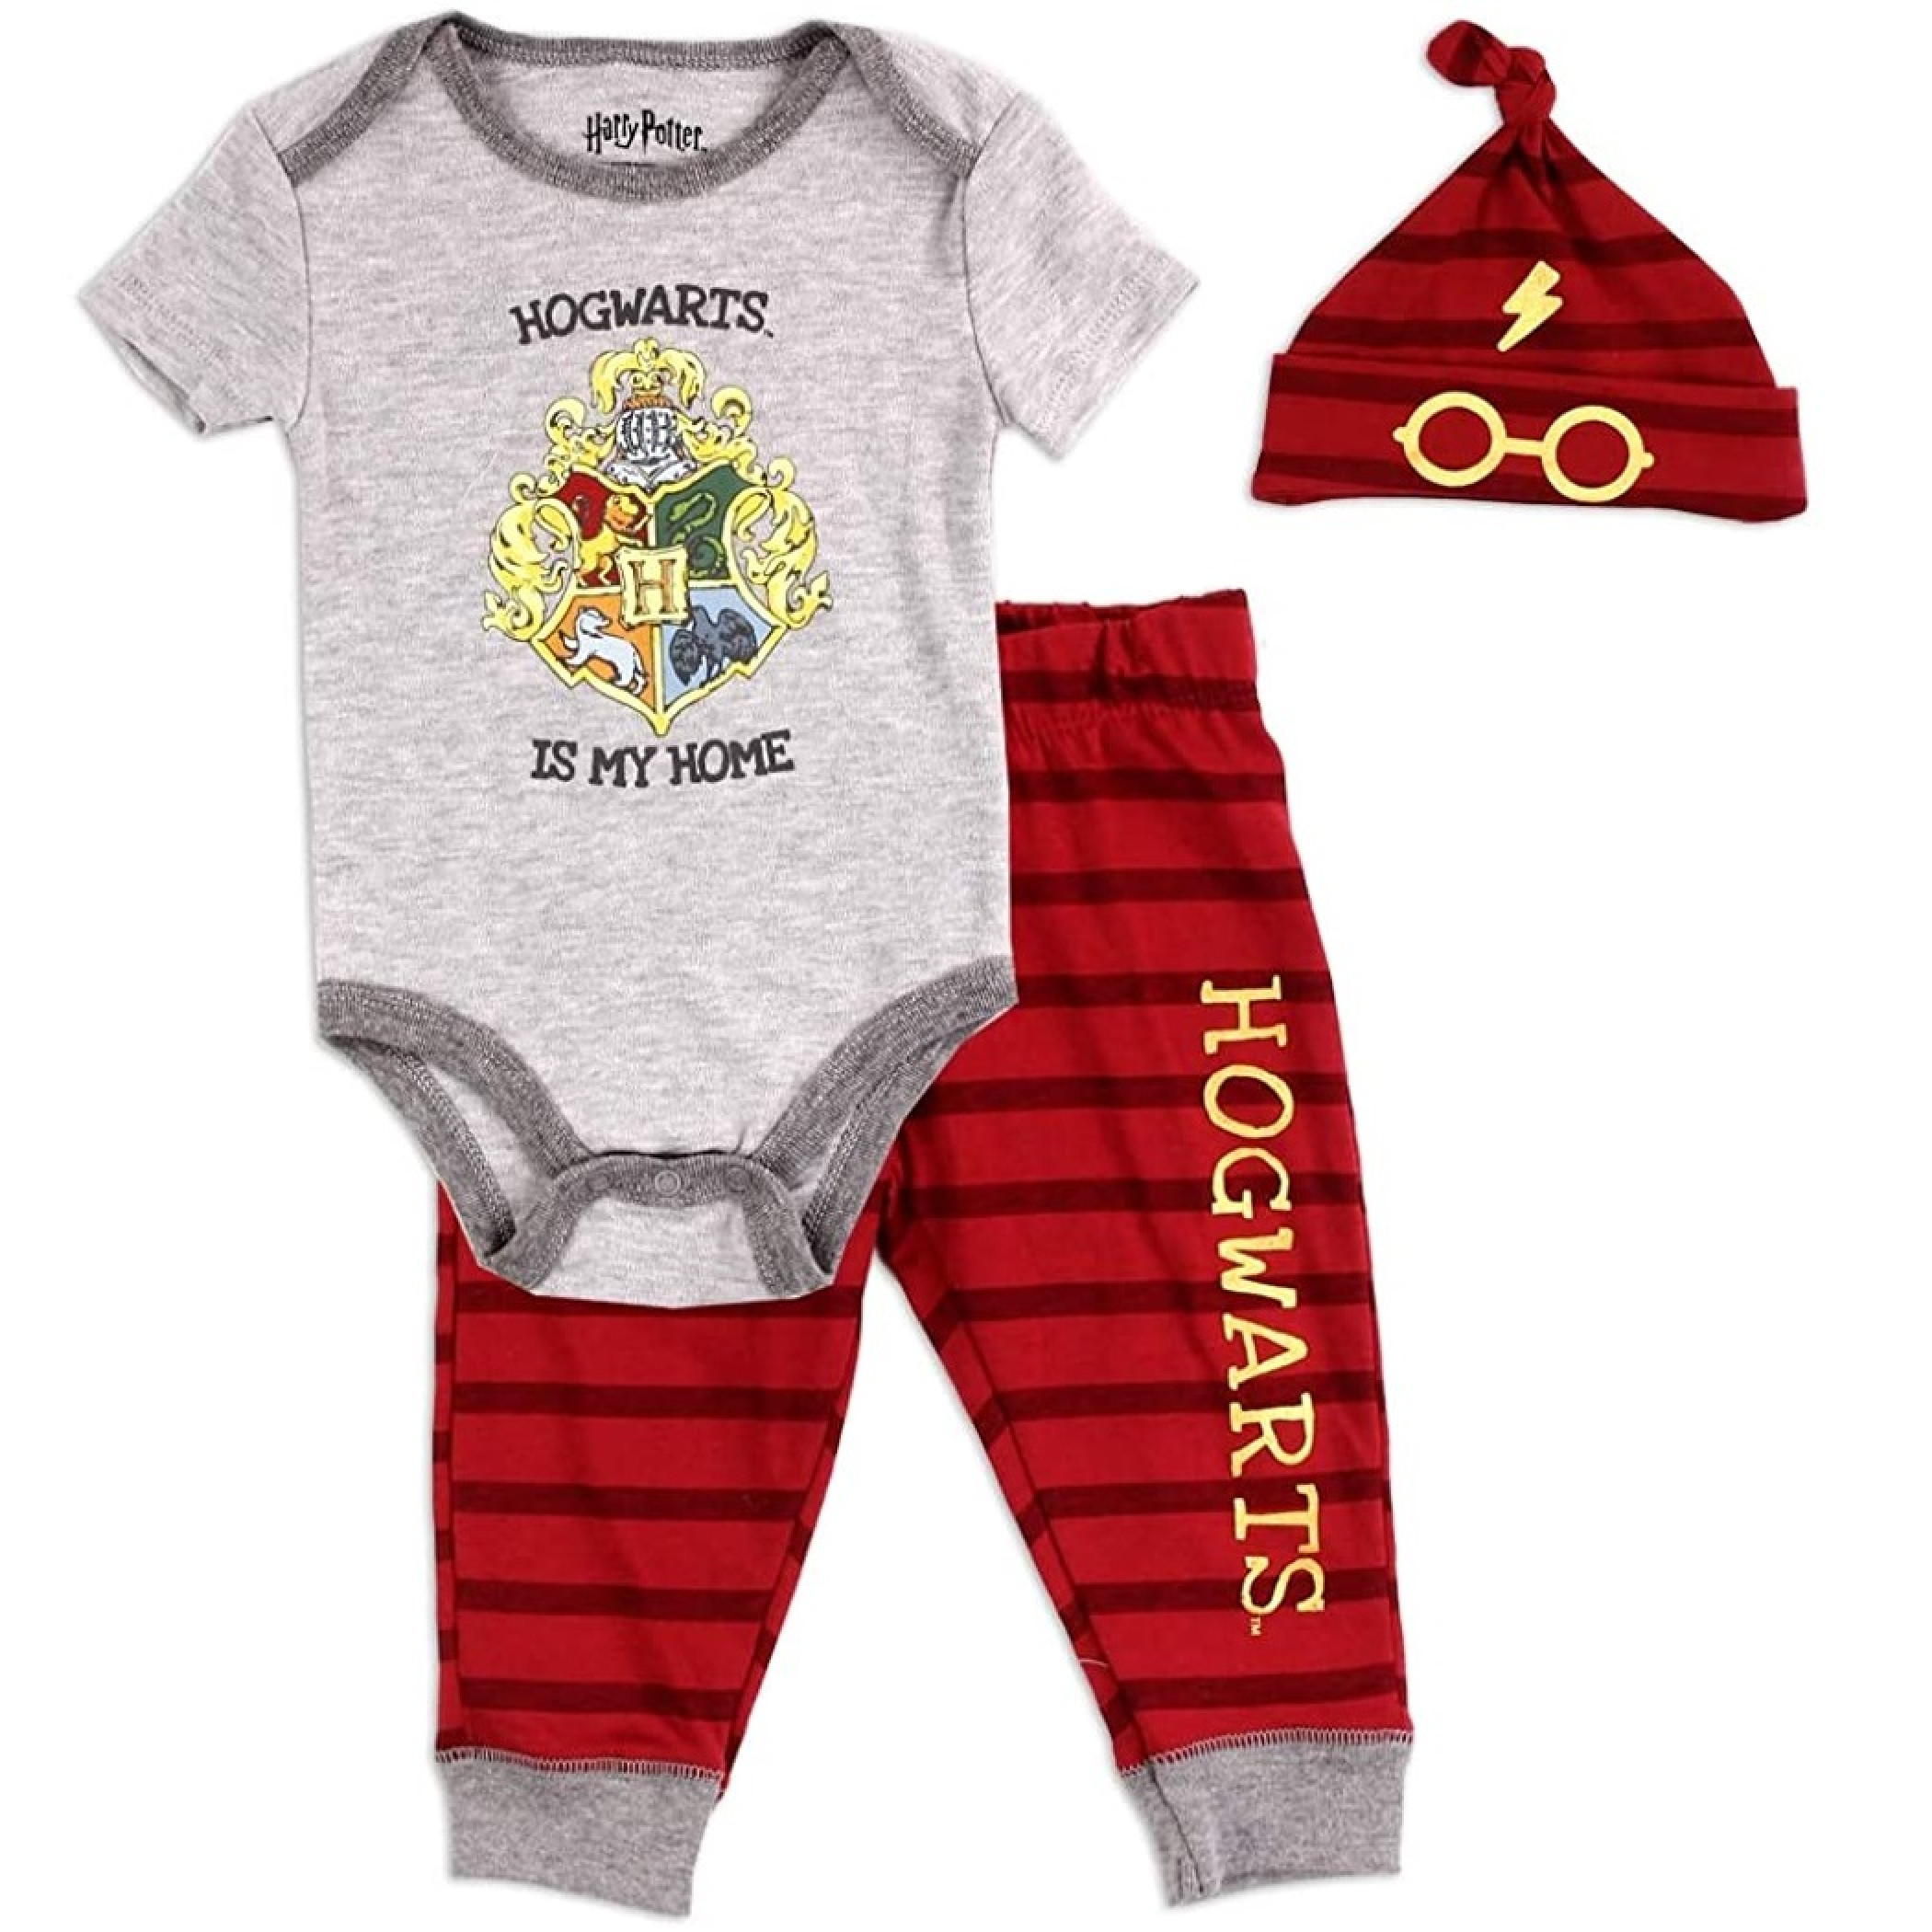 Harry Potter Hogwarts 3 Piece Bodysuit Set With Cap